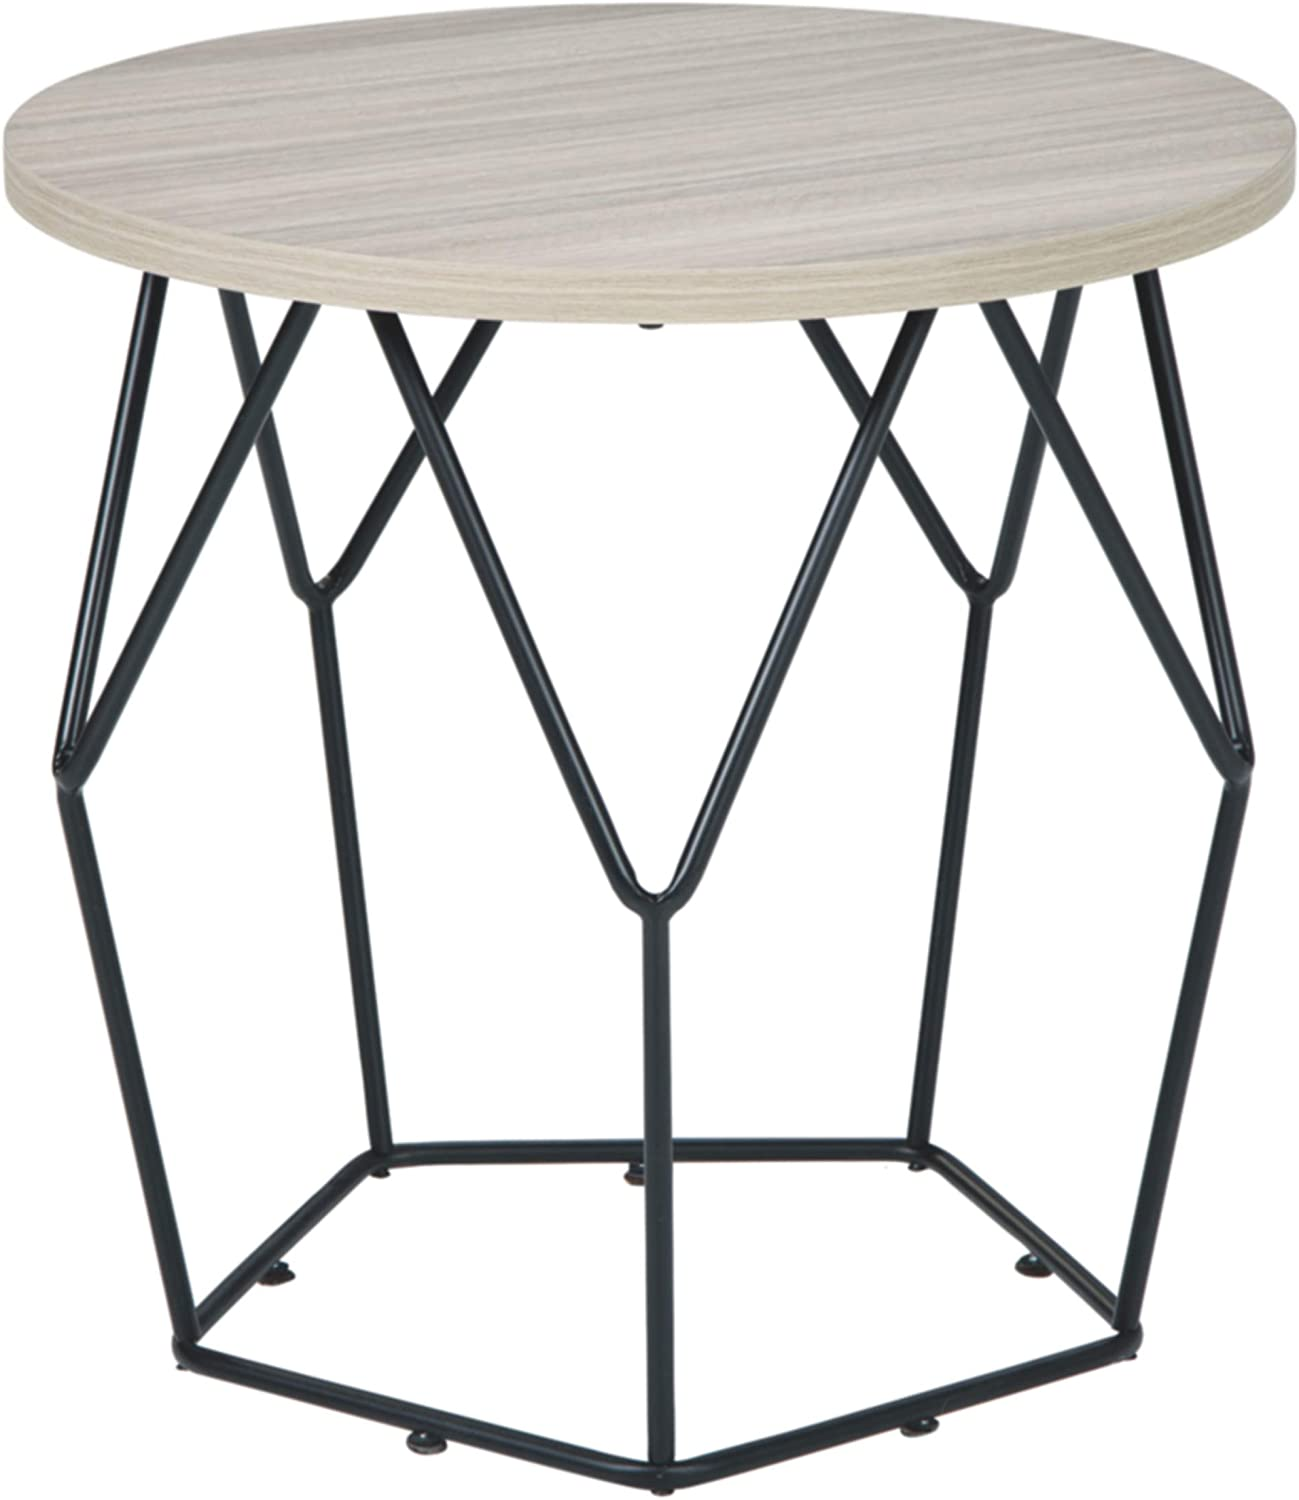 Signature Design by Ashley Waylowe Round End Table $77  Coupon